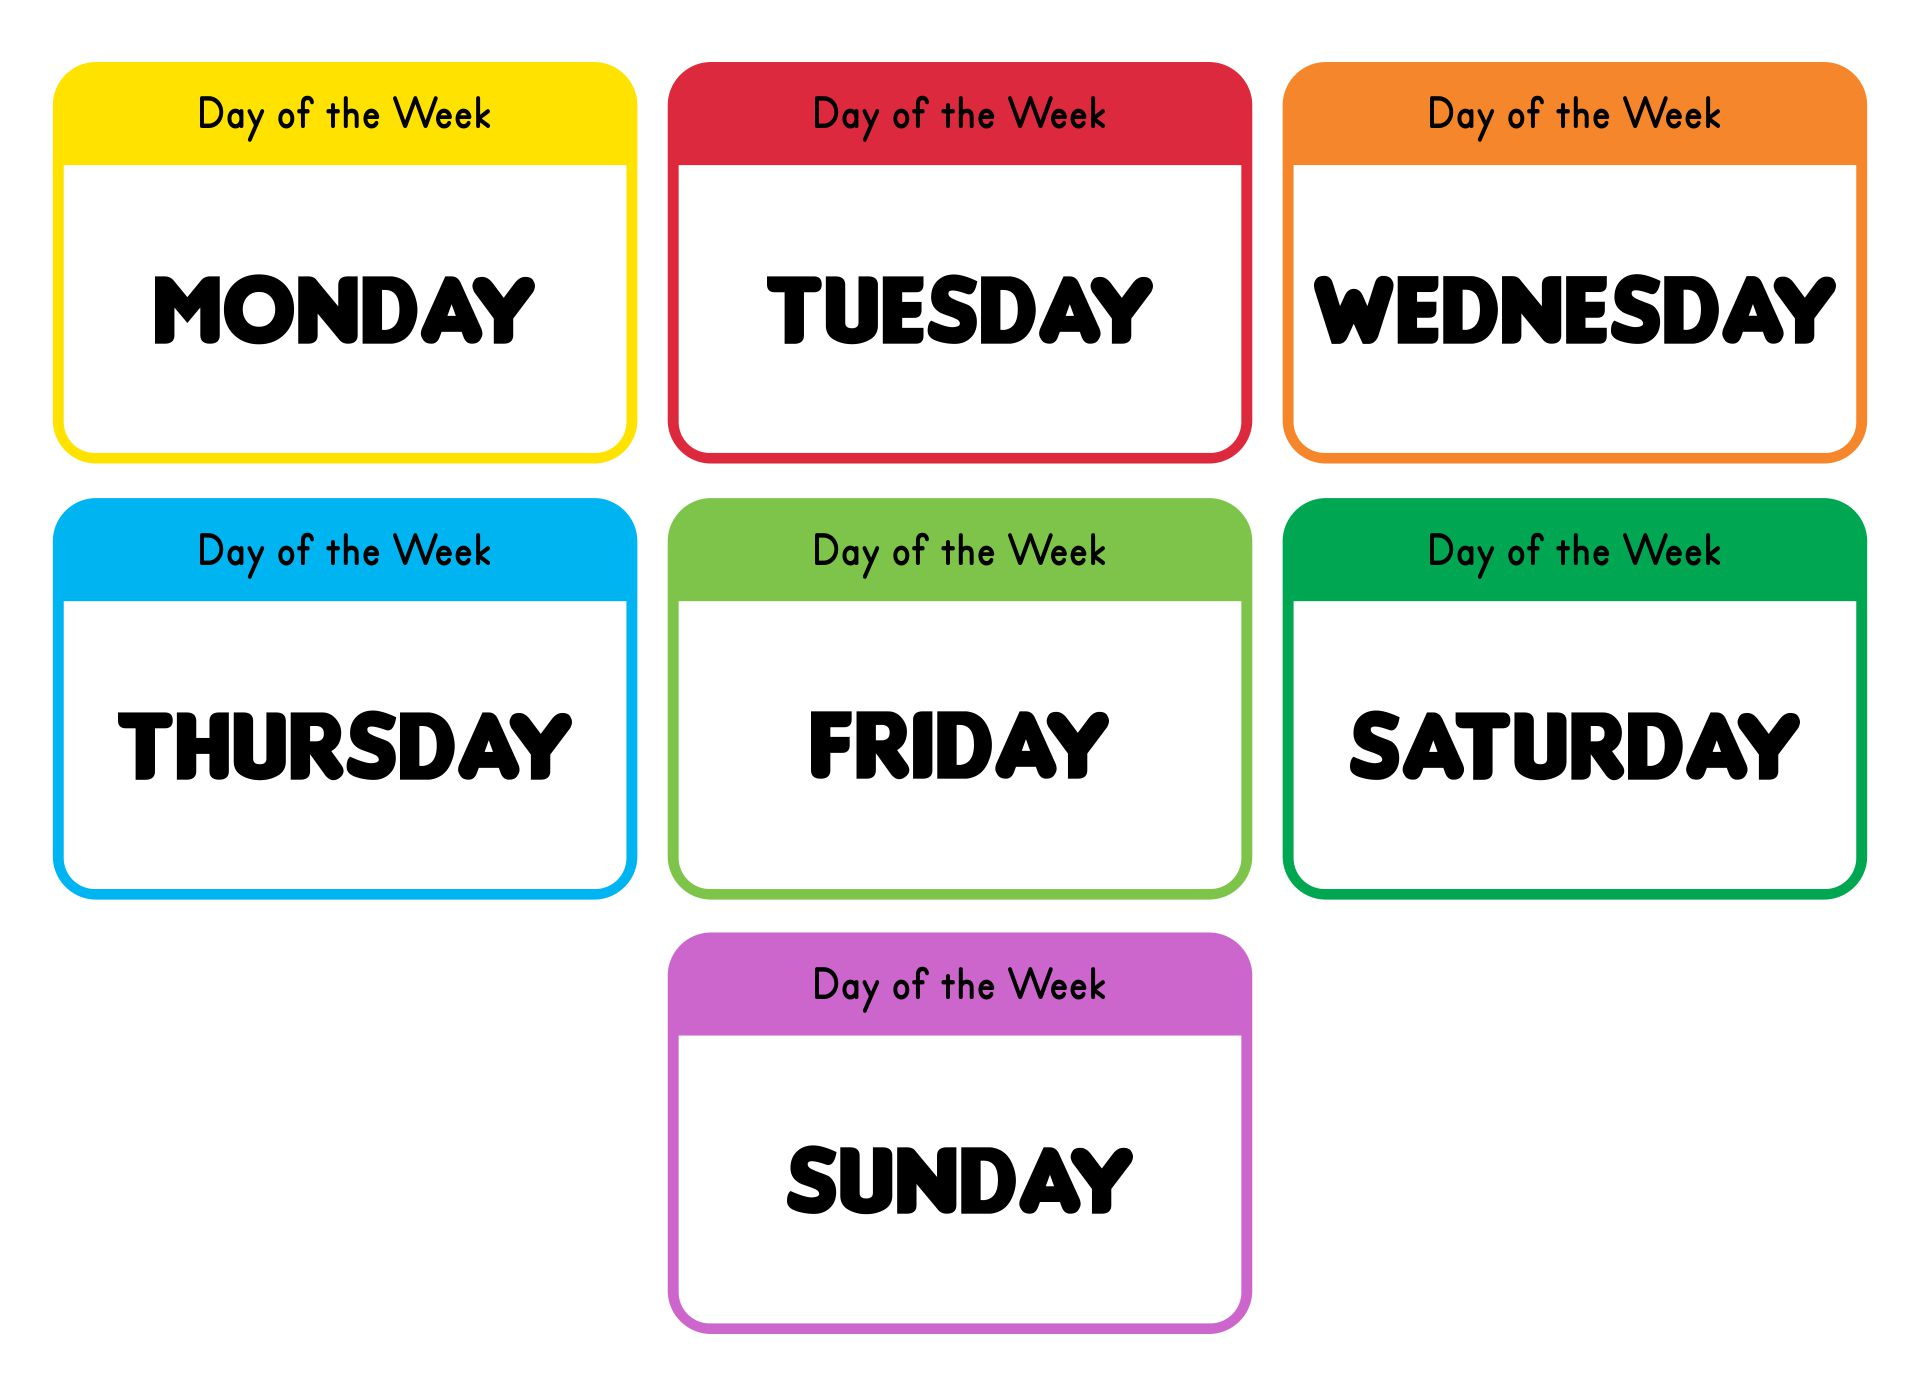 Days of the Week Monday